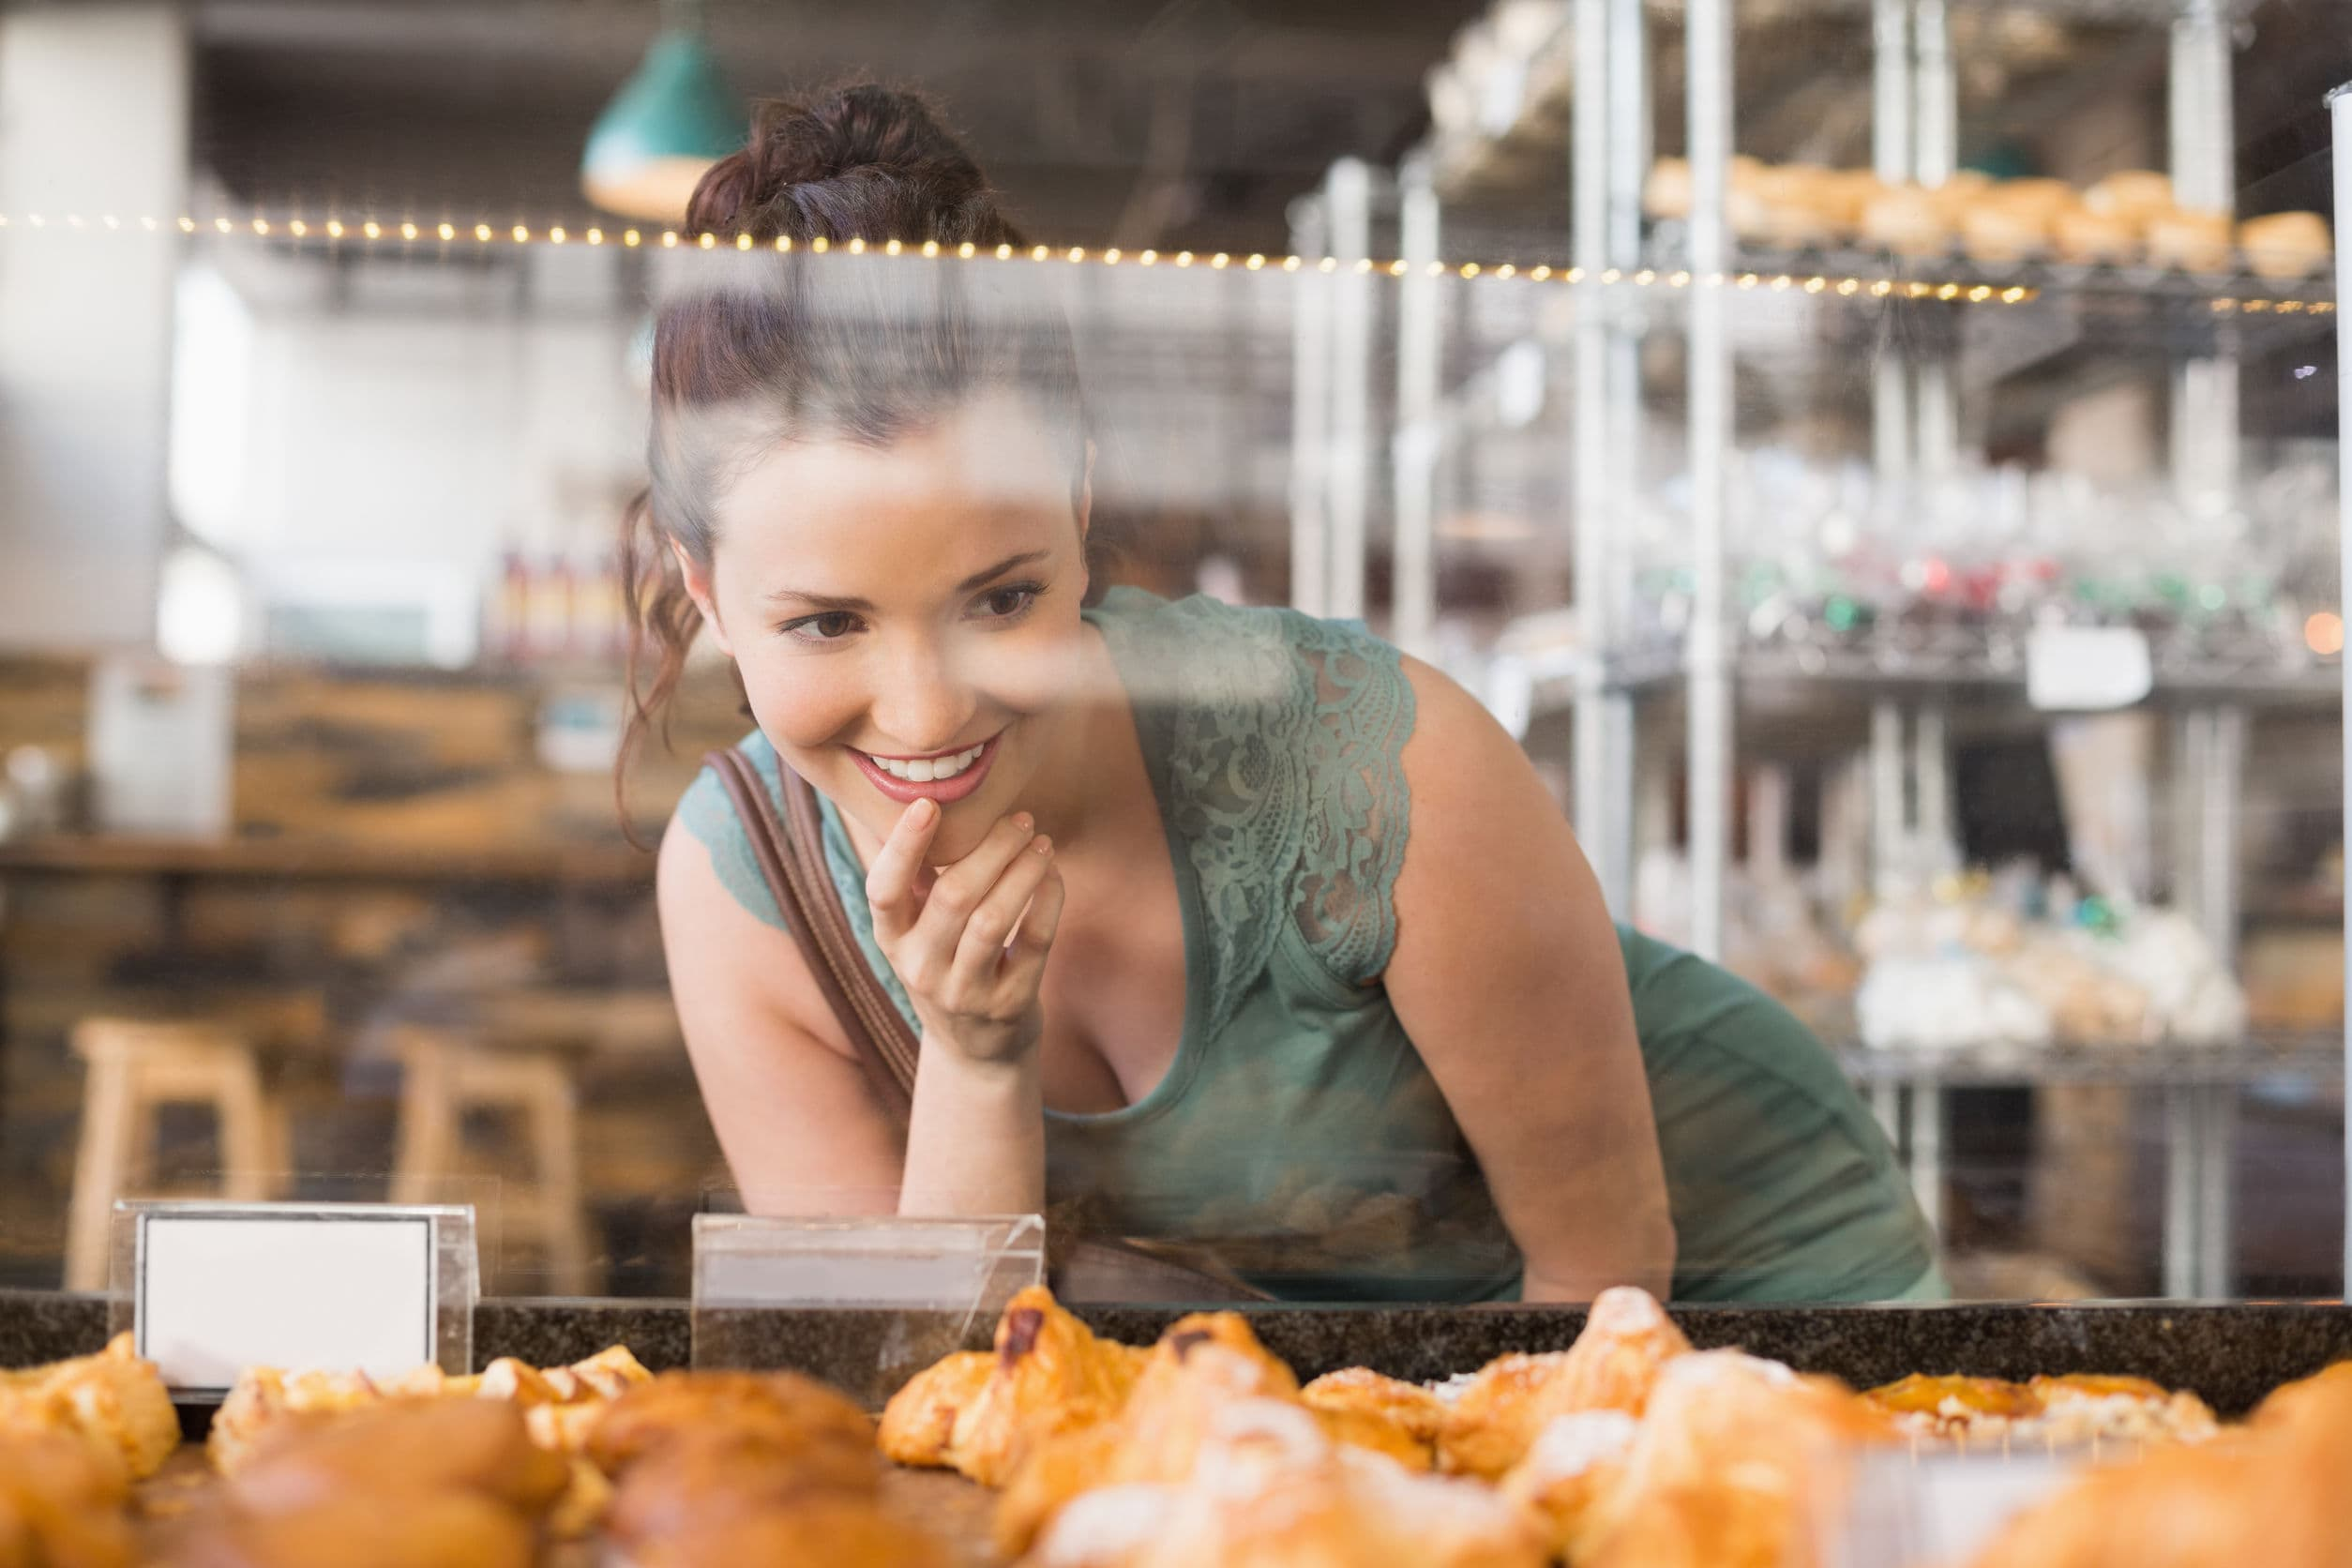 Refrigerated Display Cases Increase Impulse Buying